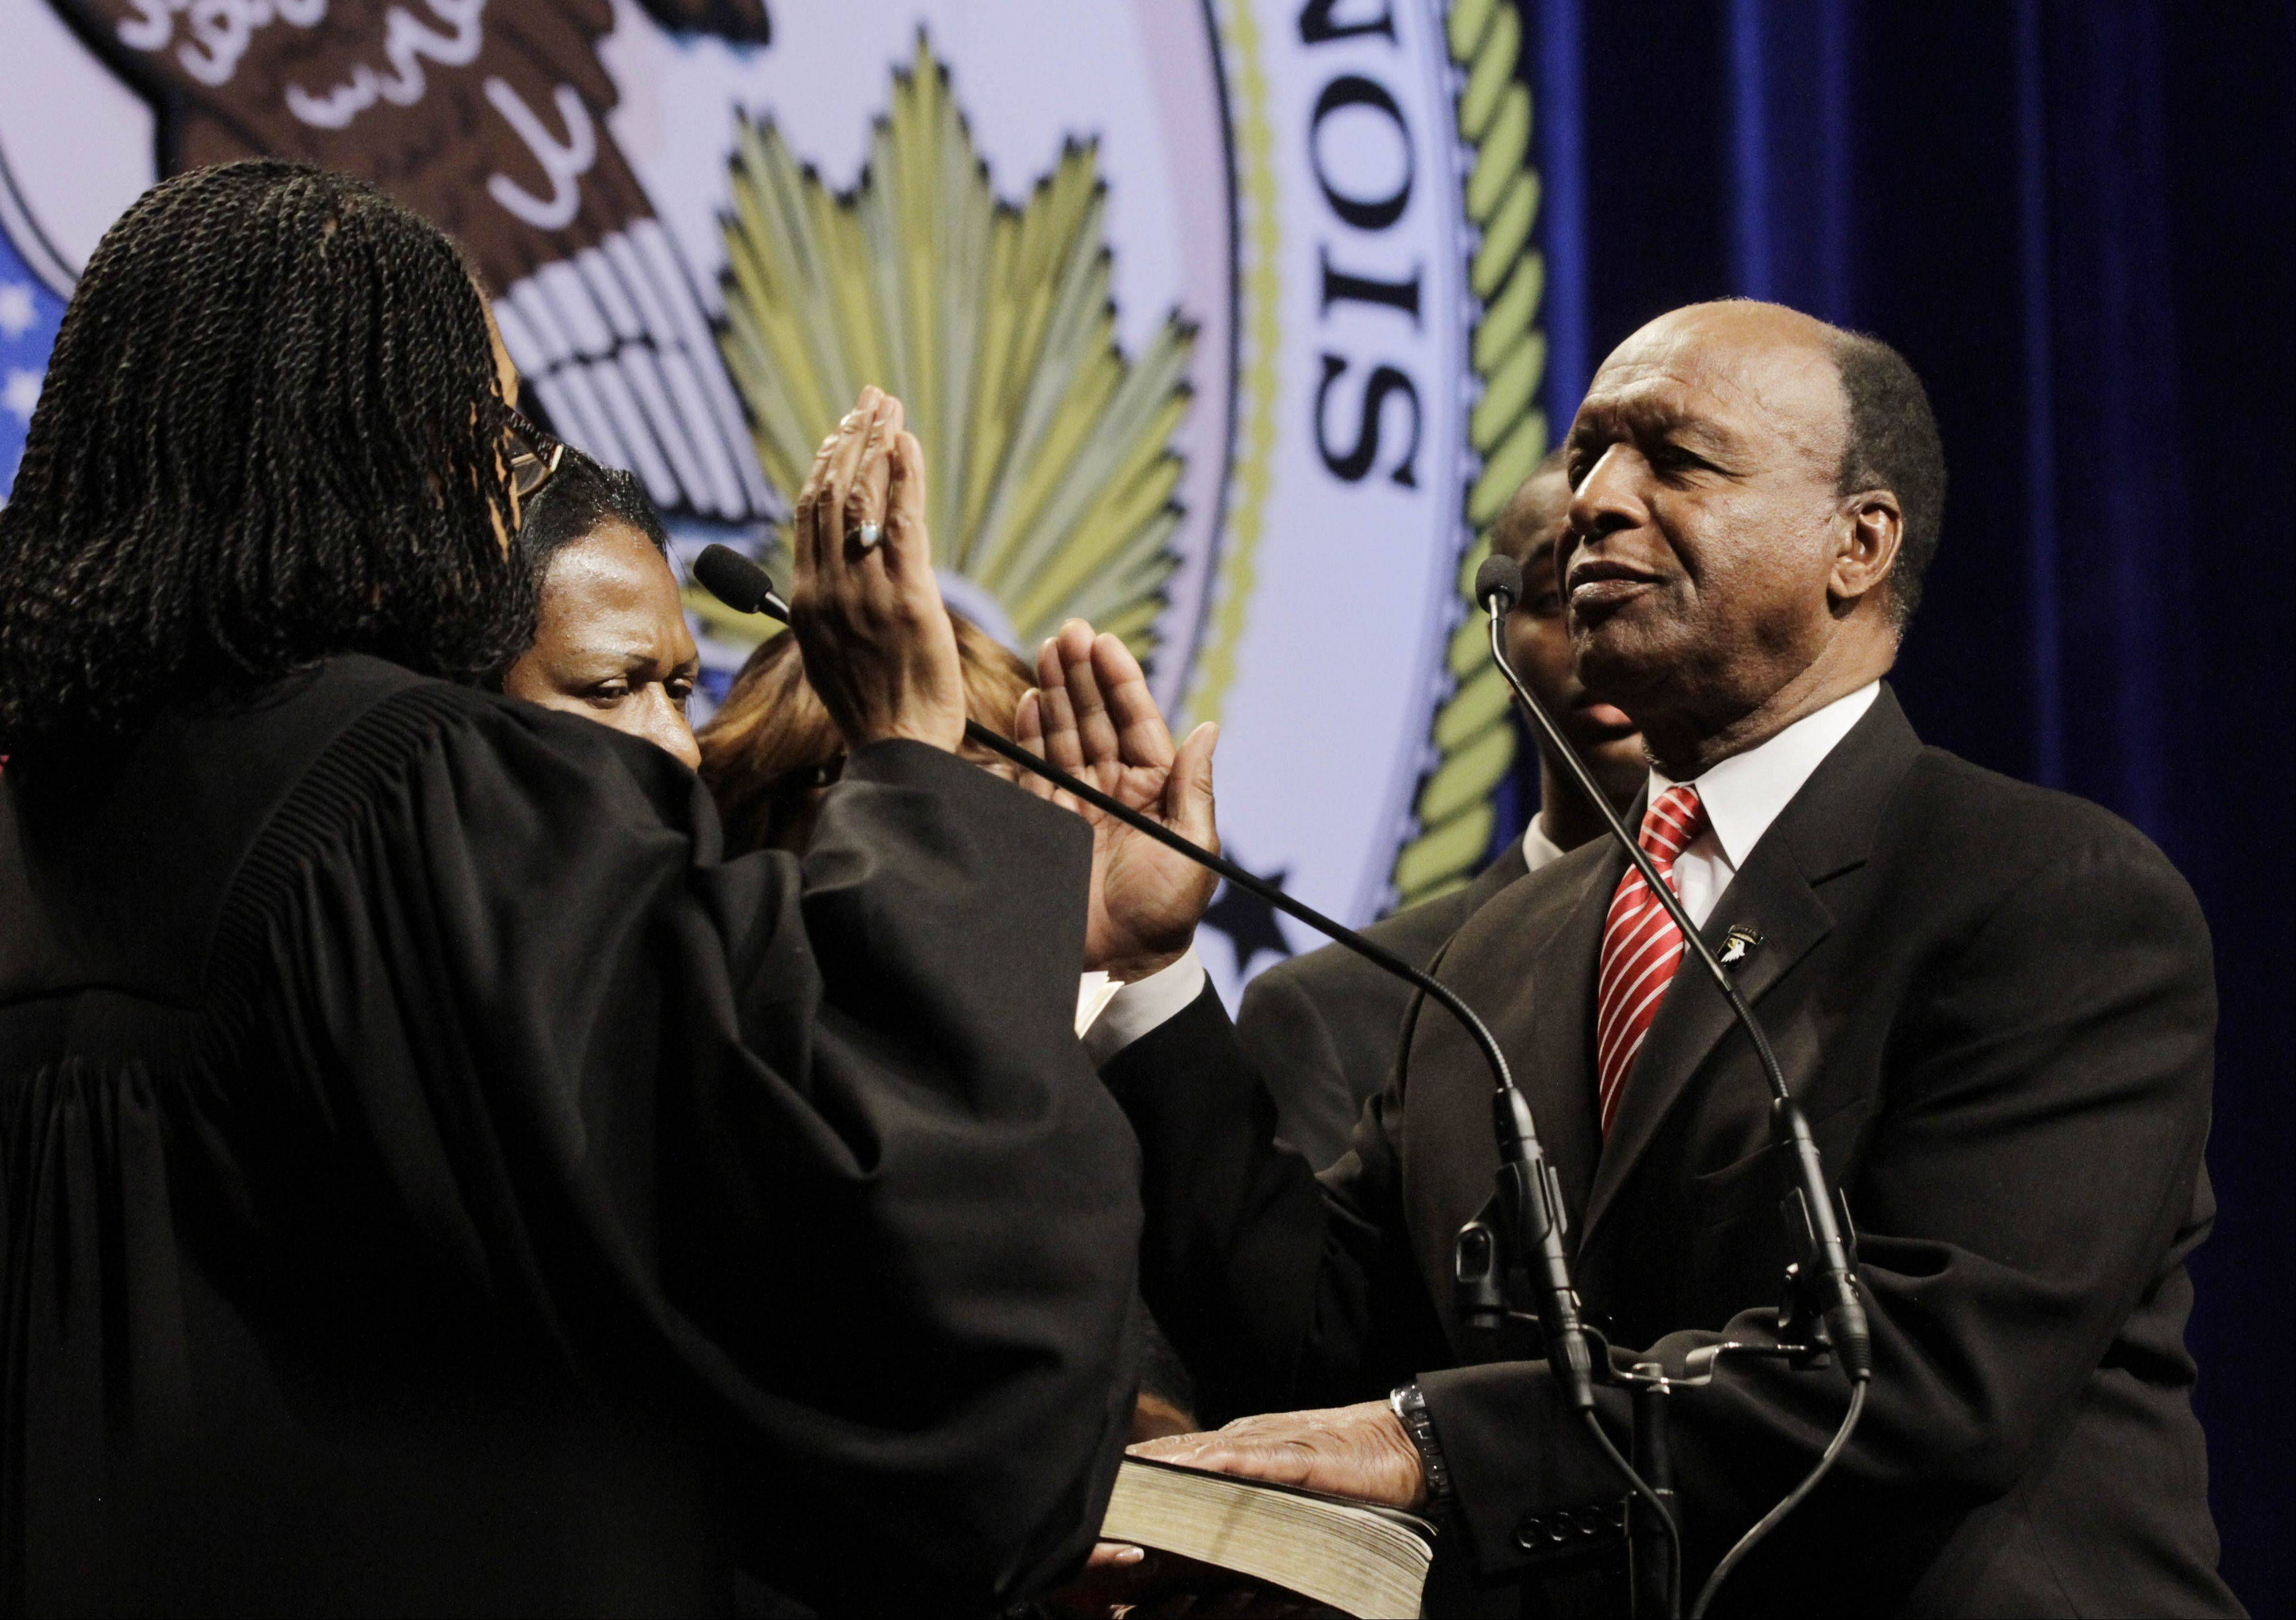 Secretary of State Jesse White takes the oath of office on Jan. 10, 2011, in Springfield. The 77-year-old Democrat announced Wednesday that he'll seek a fifth term in 2014.